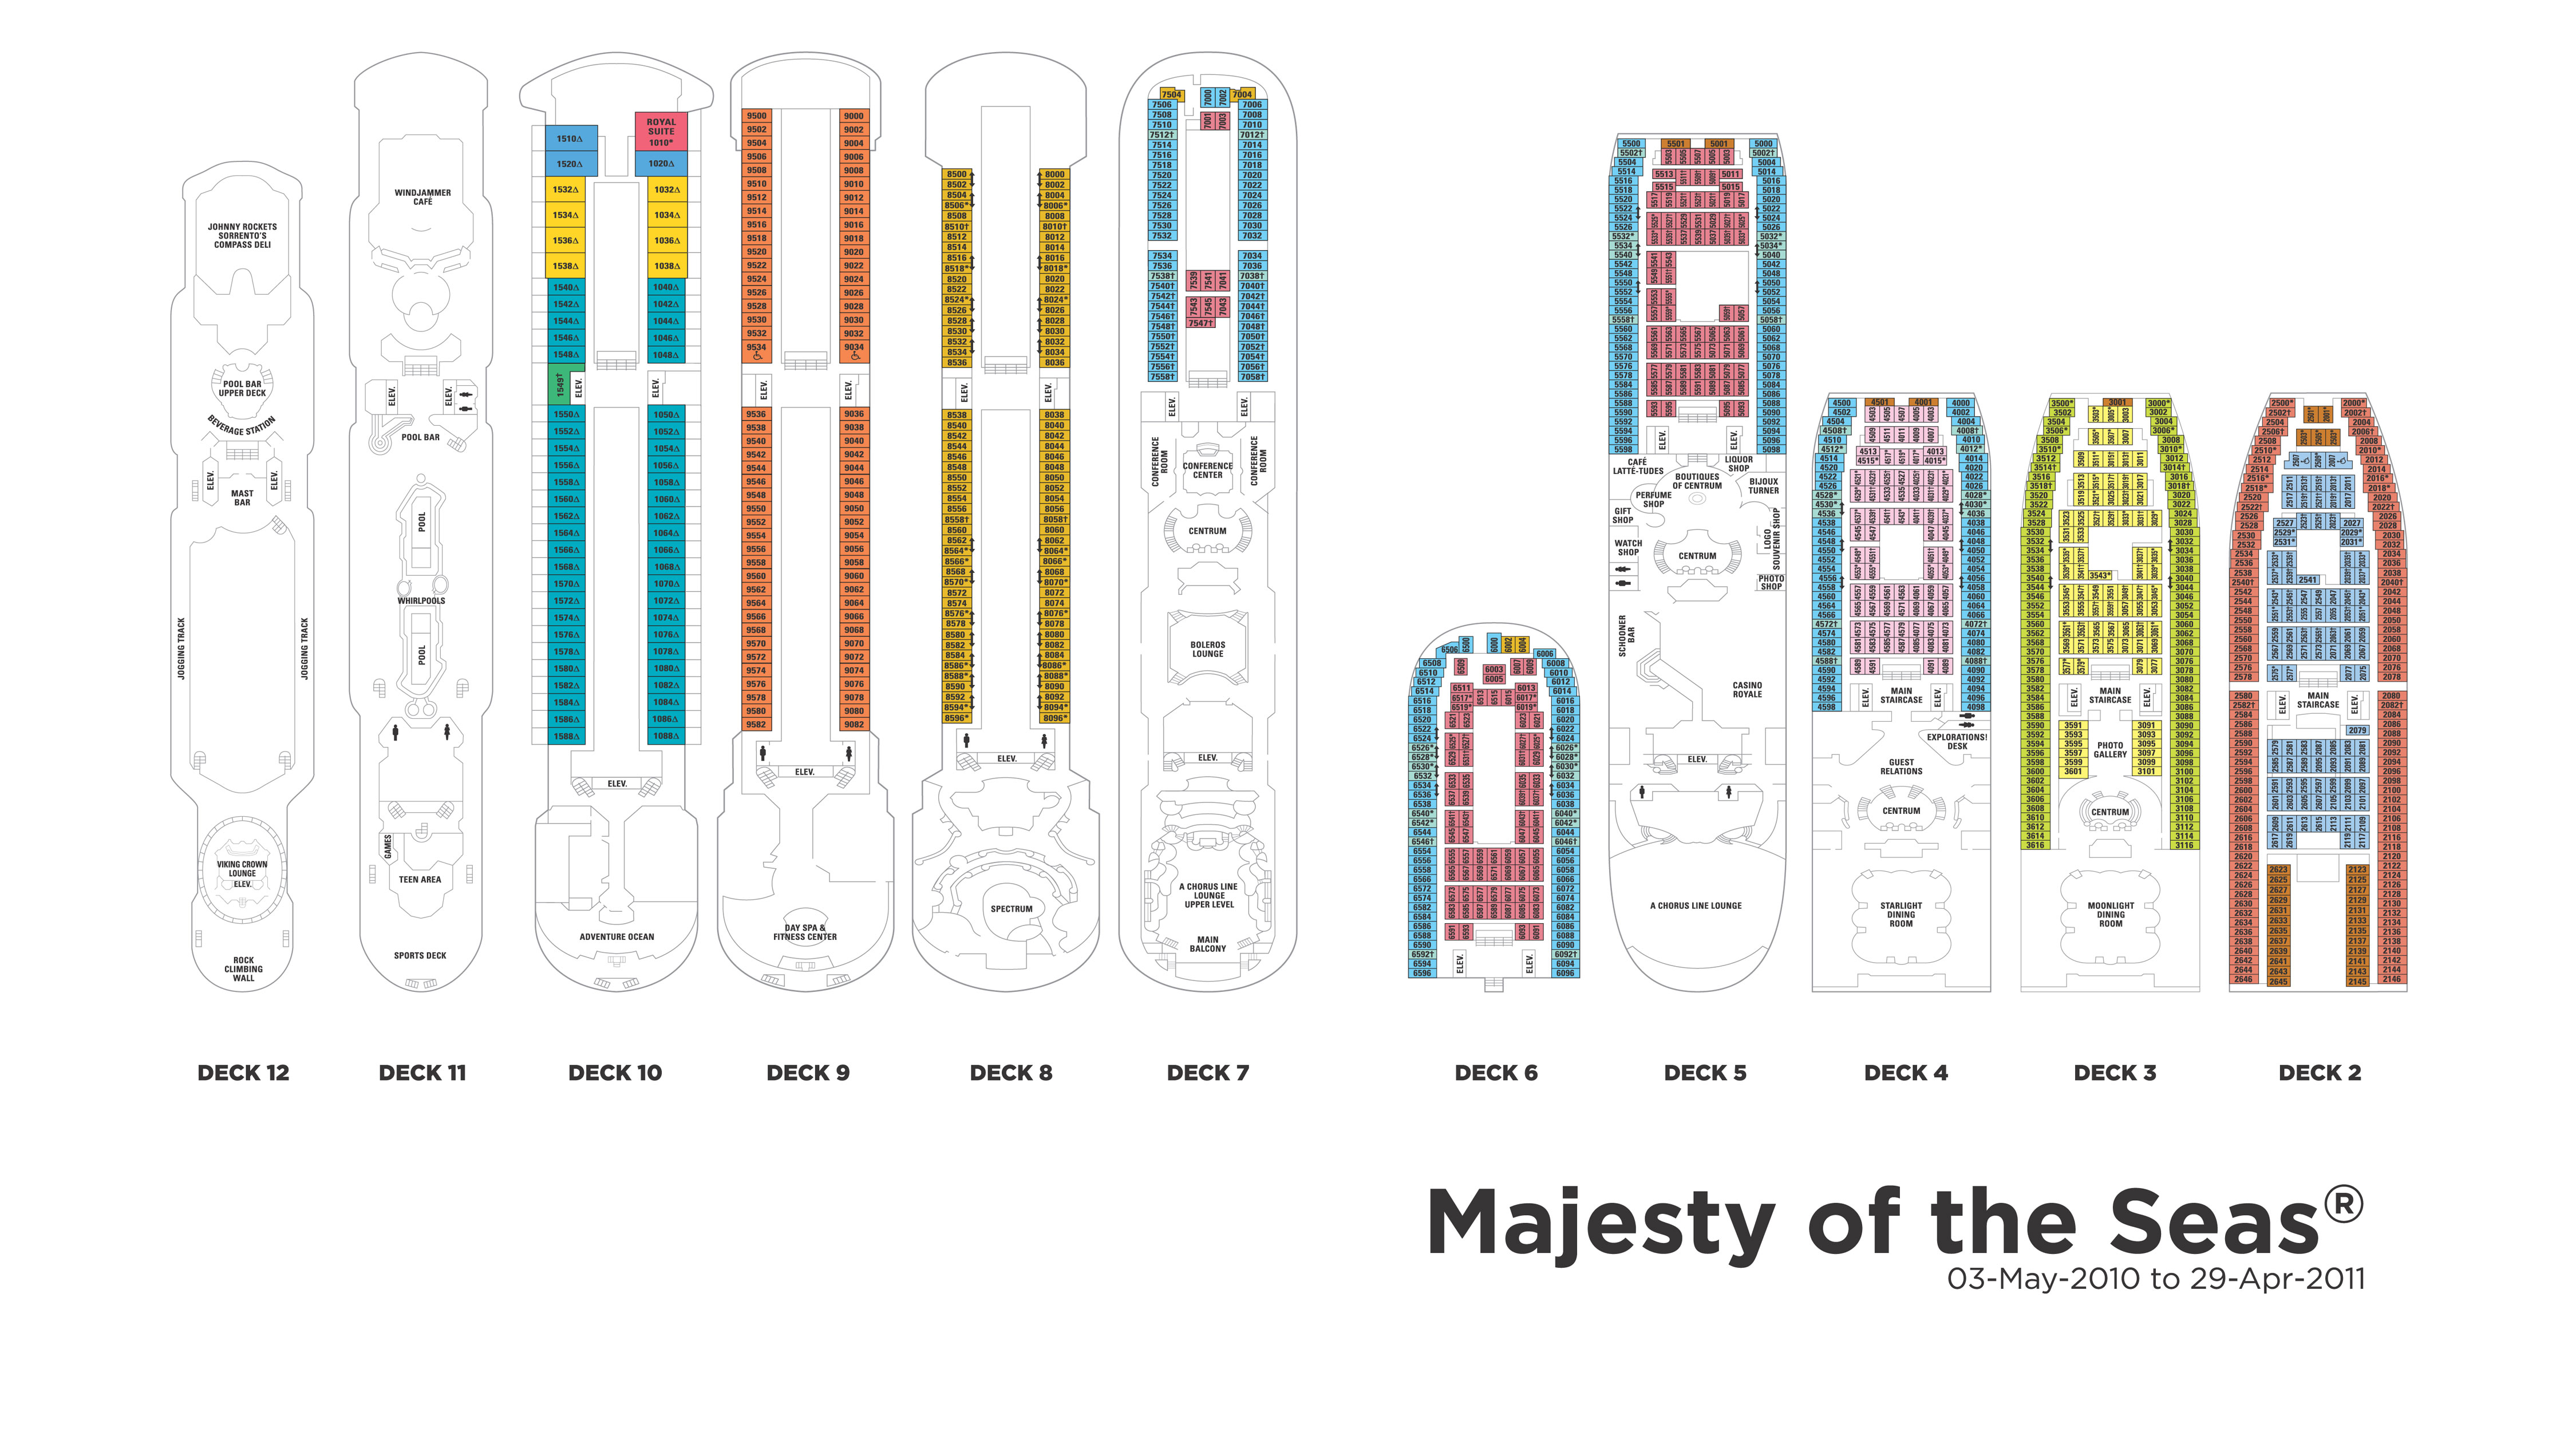 royal caribbean majesty of the seas deck plan www